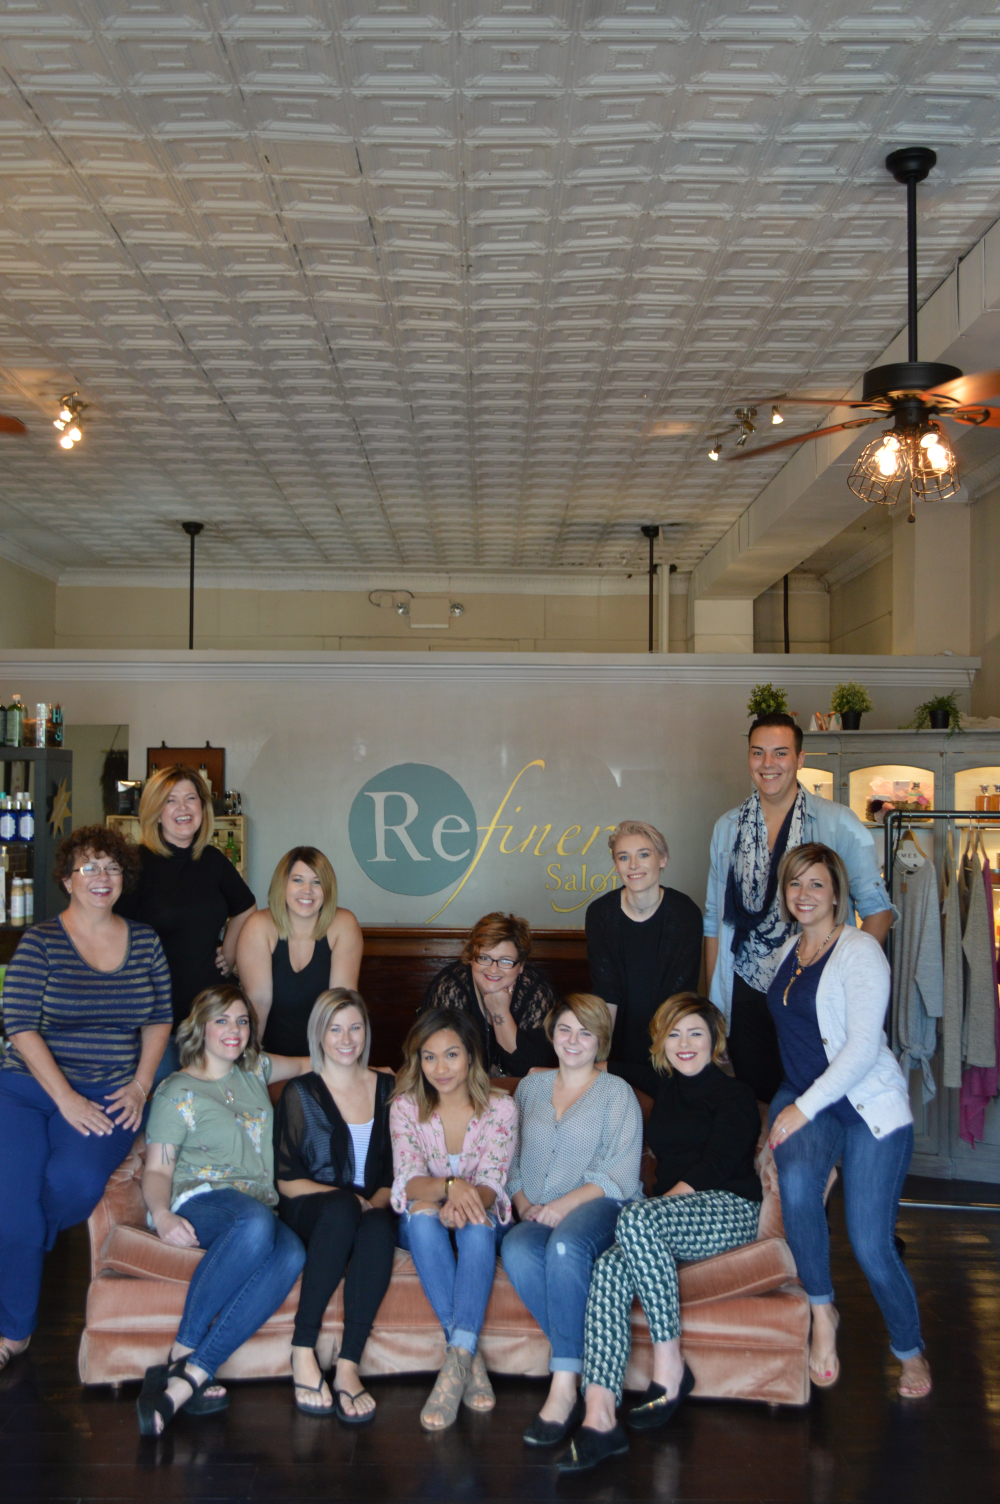 The team from Refinery Salon in O'Fallon, IL.